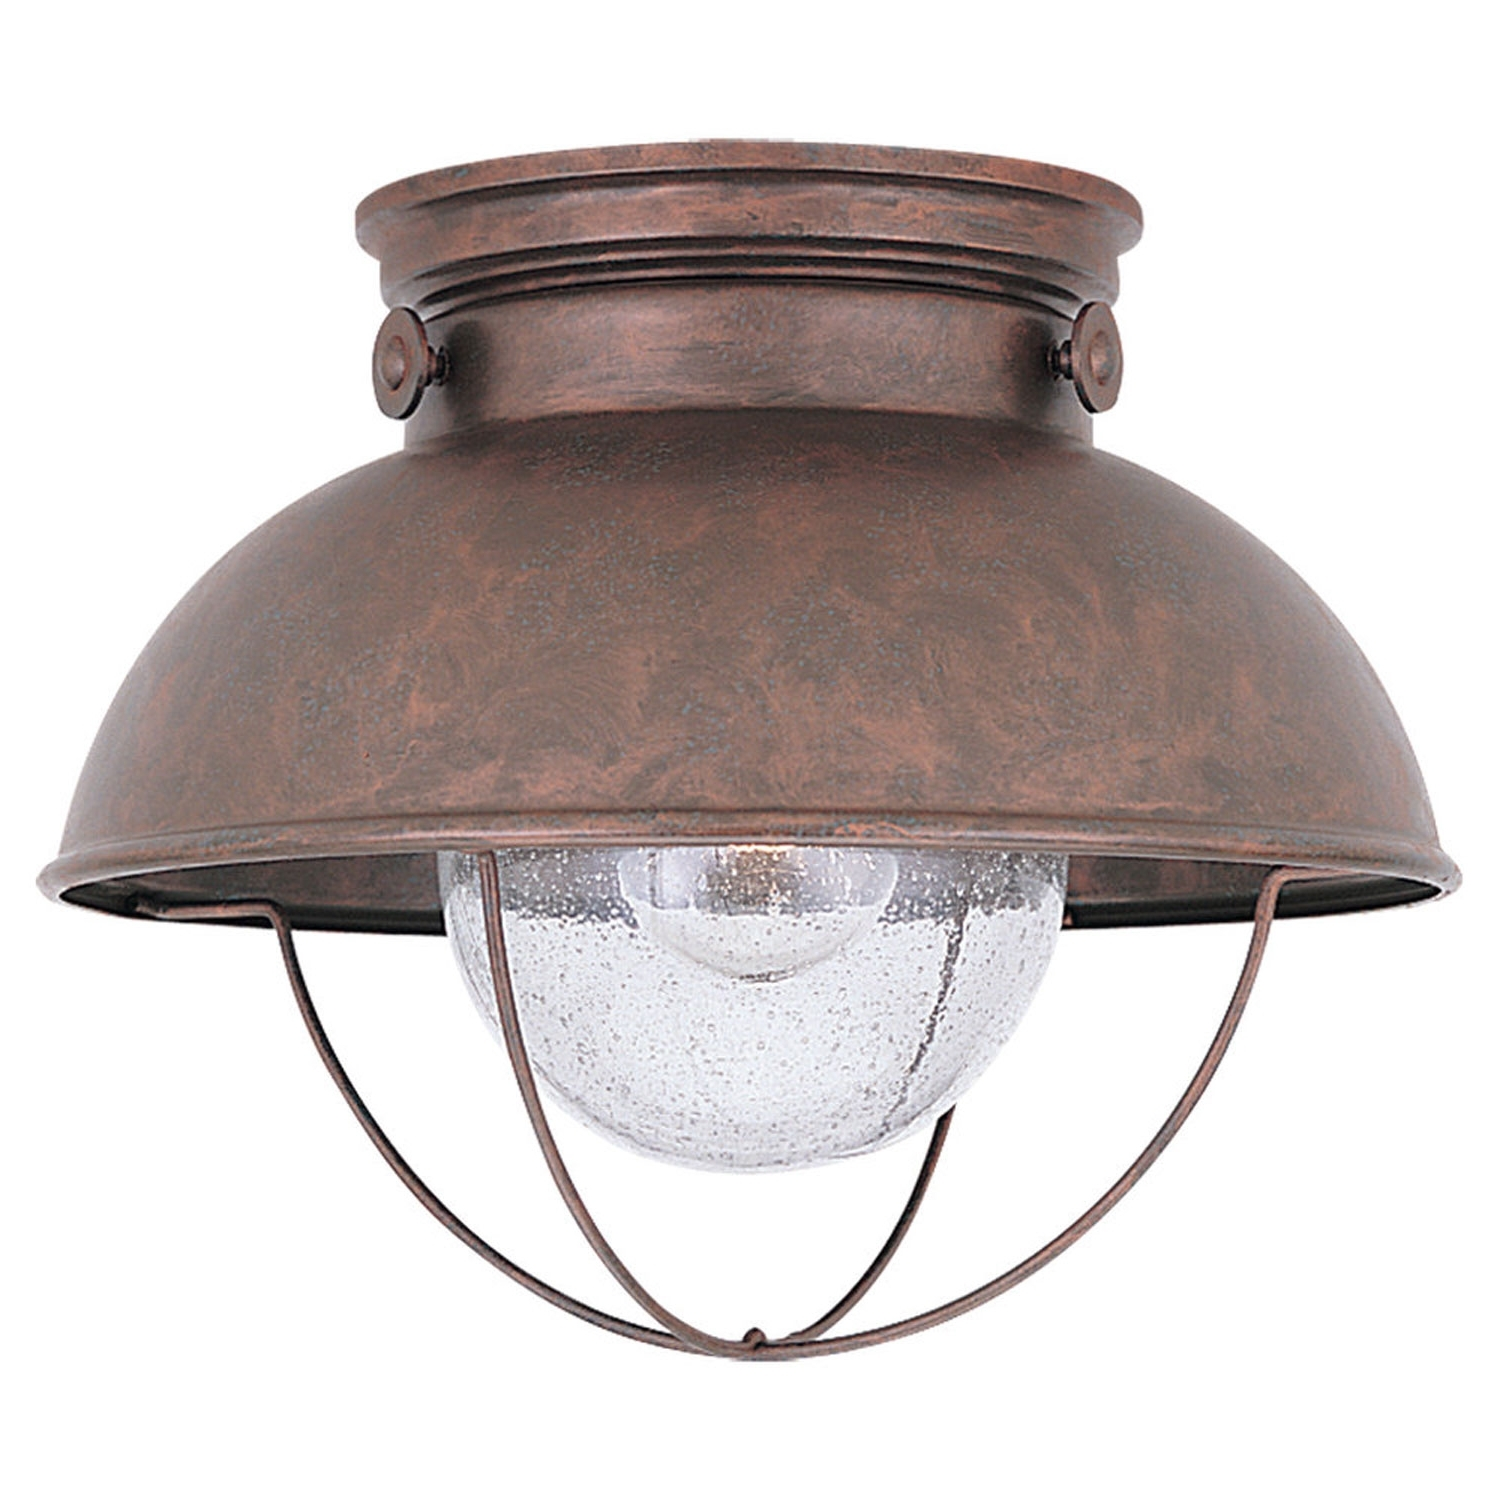 Outdoor Ceiling Spotlights With Regard To Preferred Outdoor Ceiling Lighting (View 15 of 20)